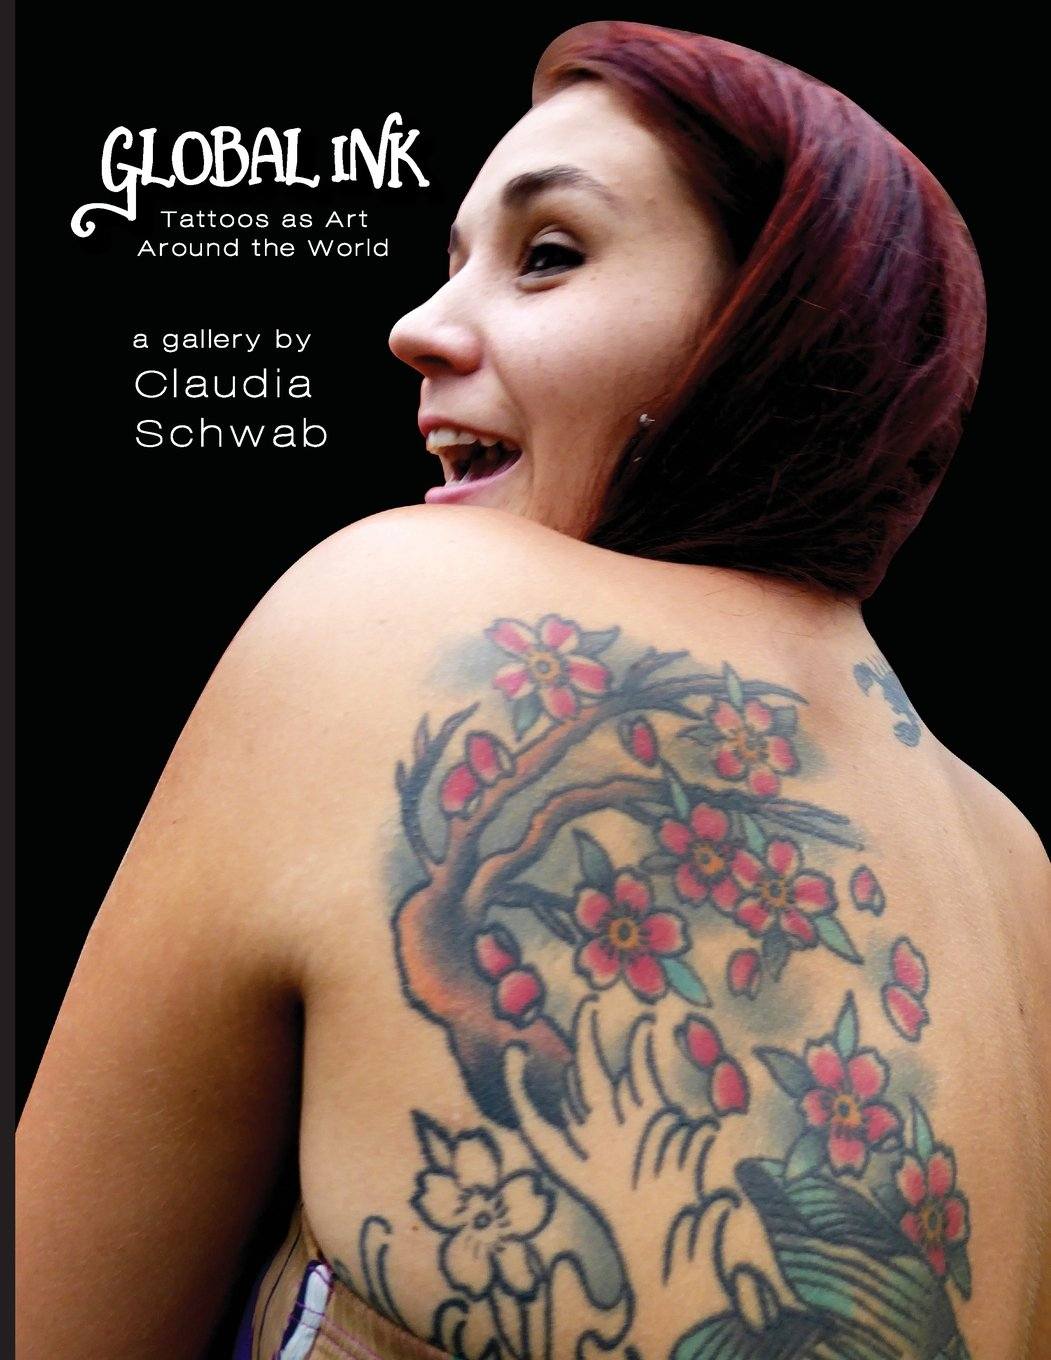 Global Ink: Tattoos as Art Around the World